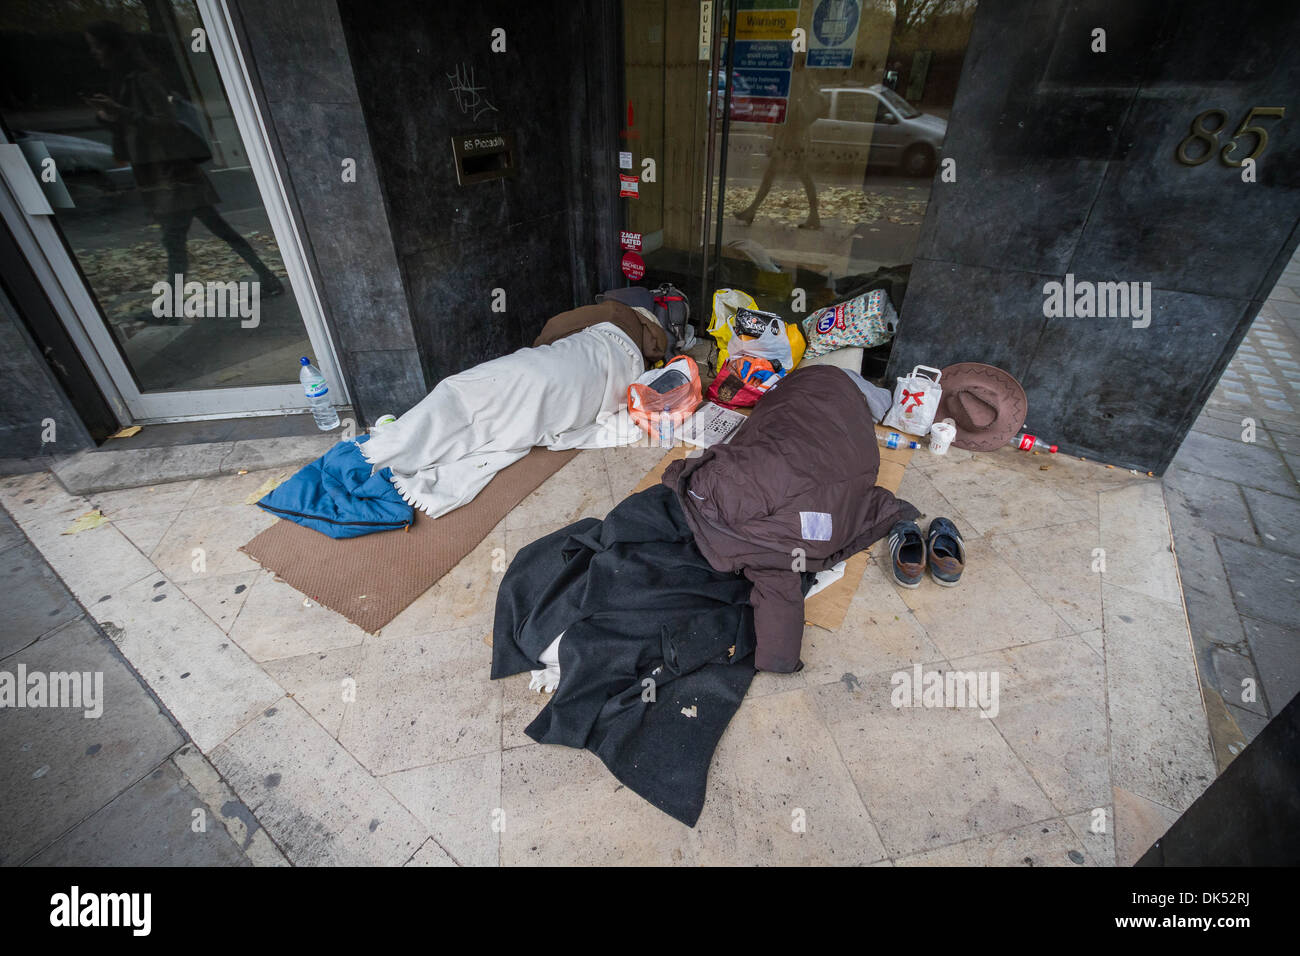 Rough sleepers in a doorway during the day. Green Park, London, UK. - Stock Image